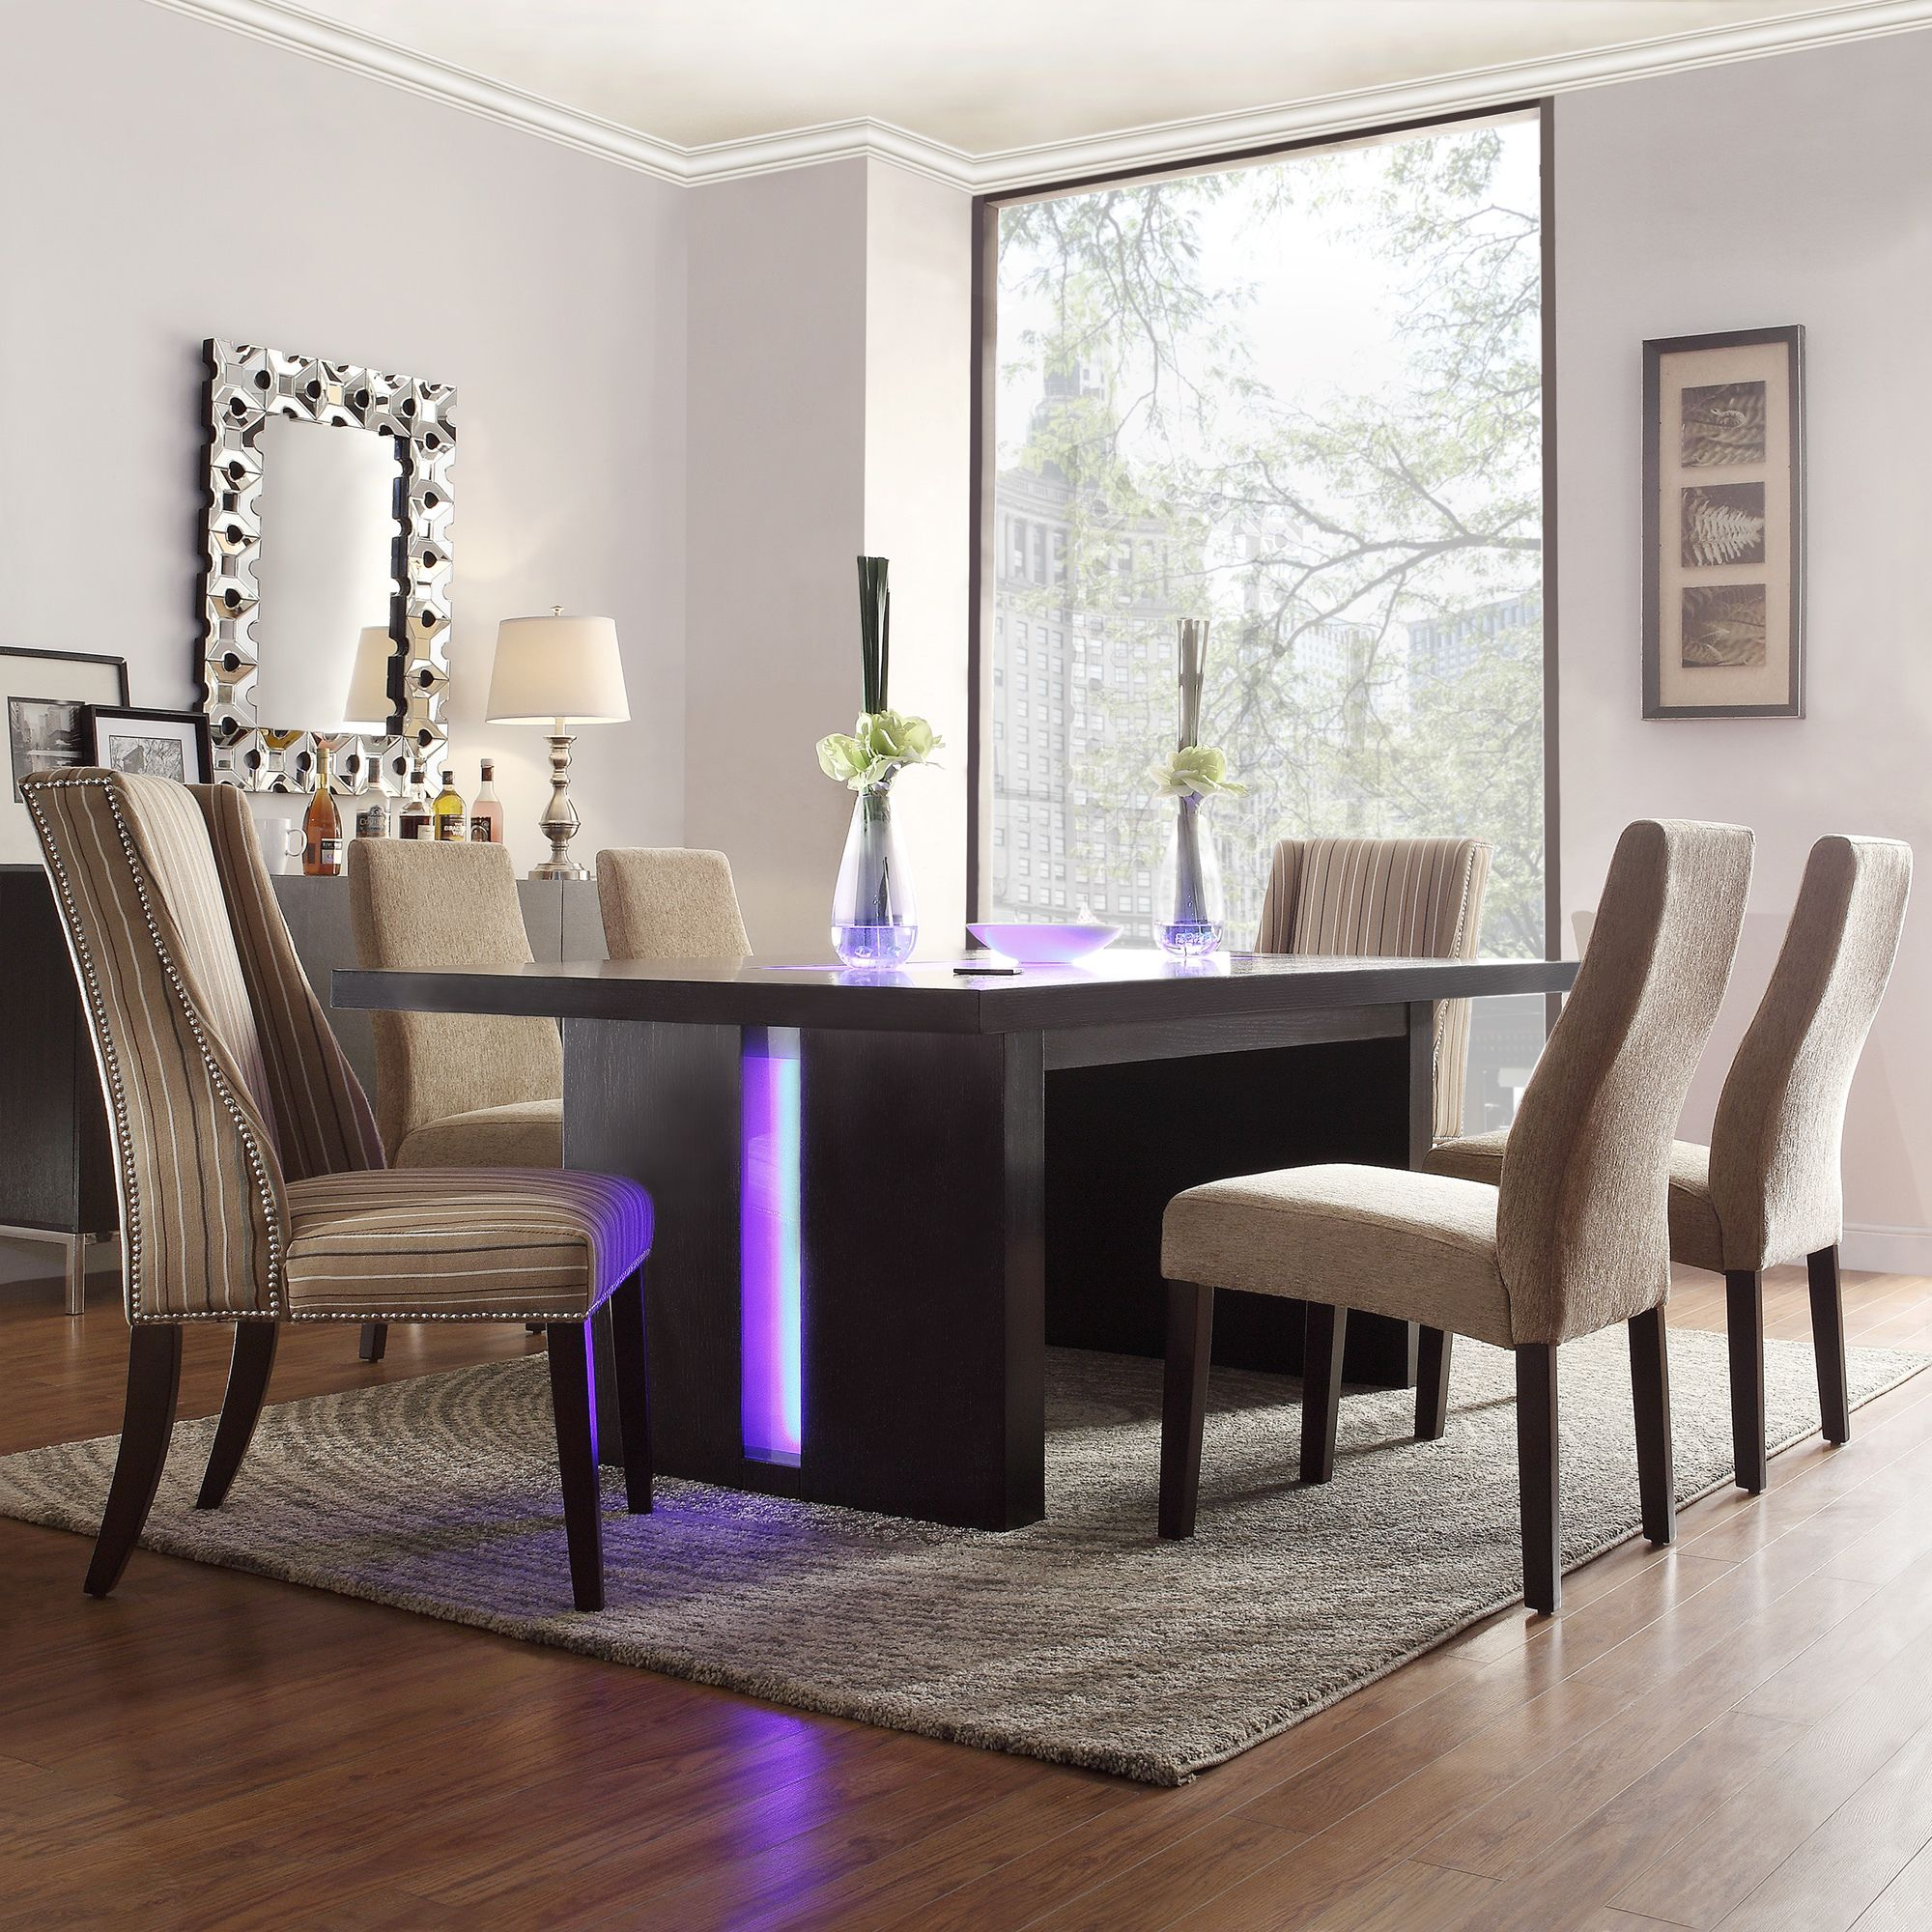 Every contemporary dining area needs an innovative dining set. Including a  table and six comfortable